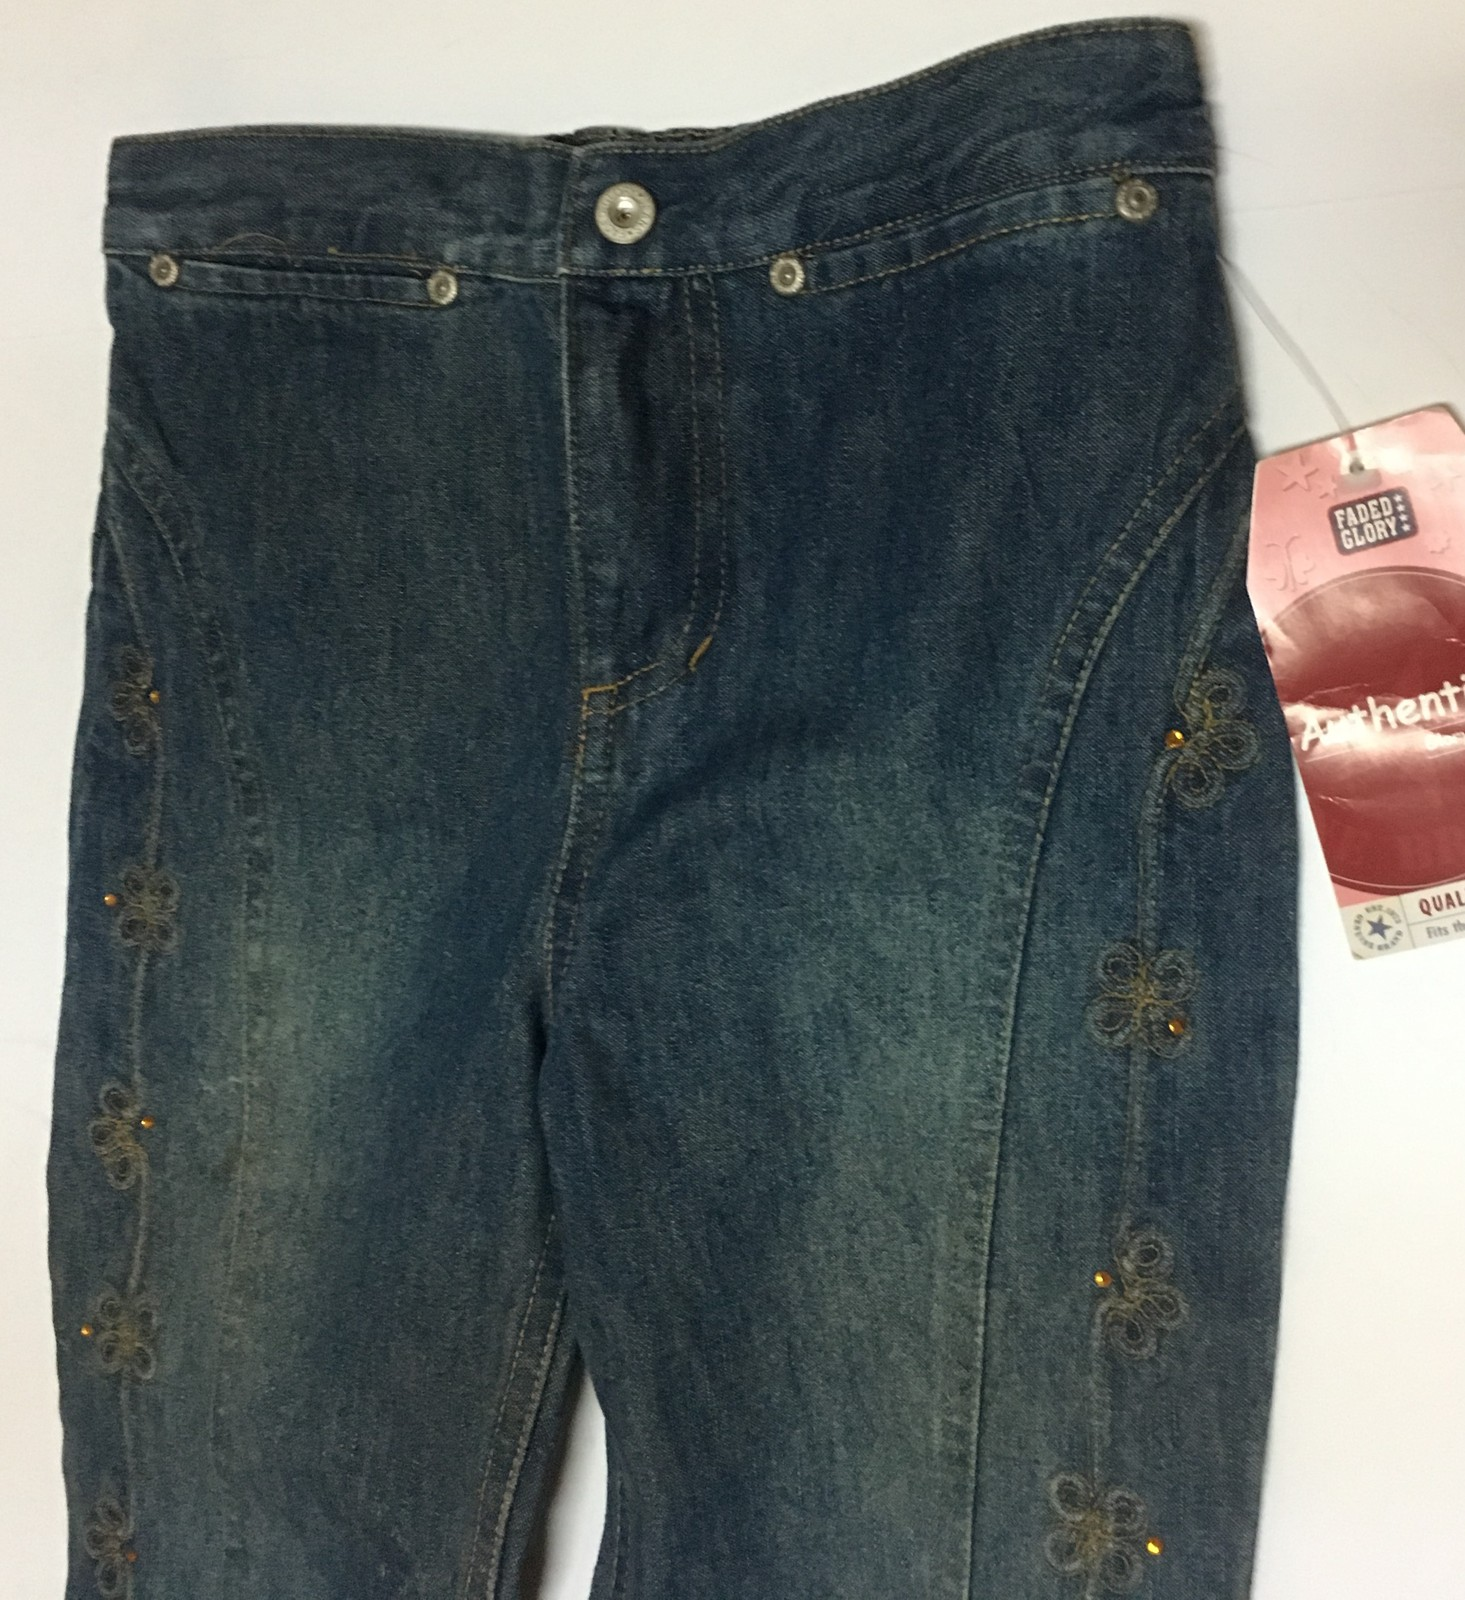 Youth Girl's 6X Blue Jeans NWT Faded Glory Rhinestones Embroidered